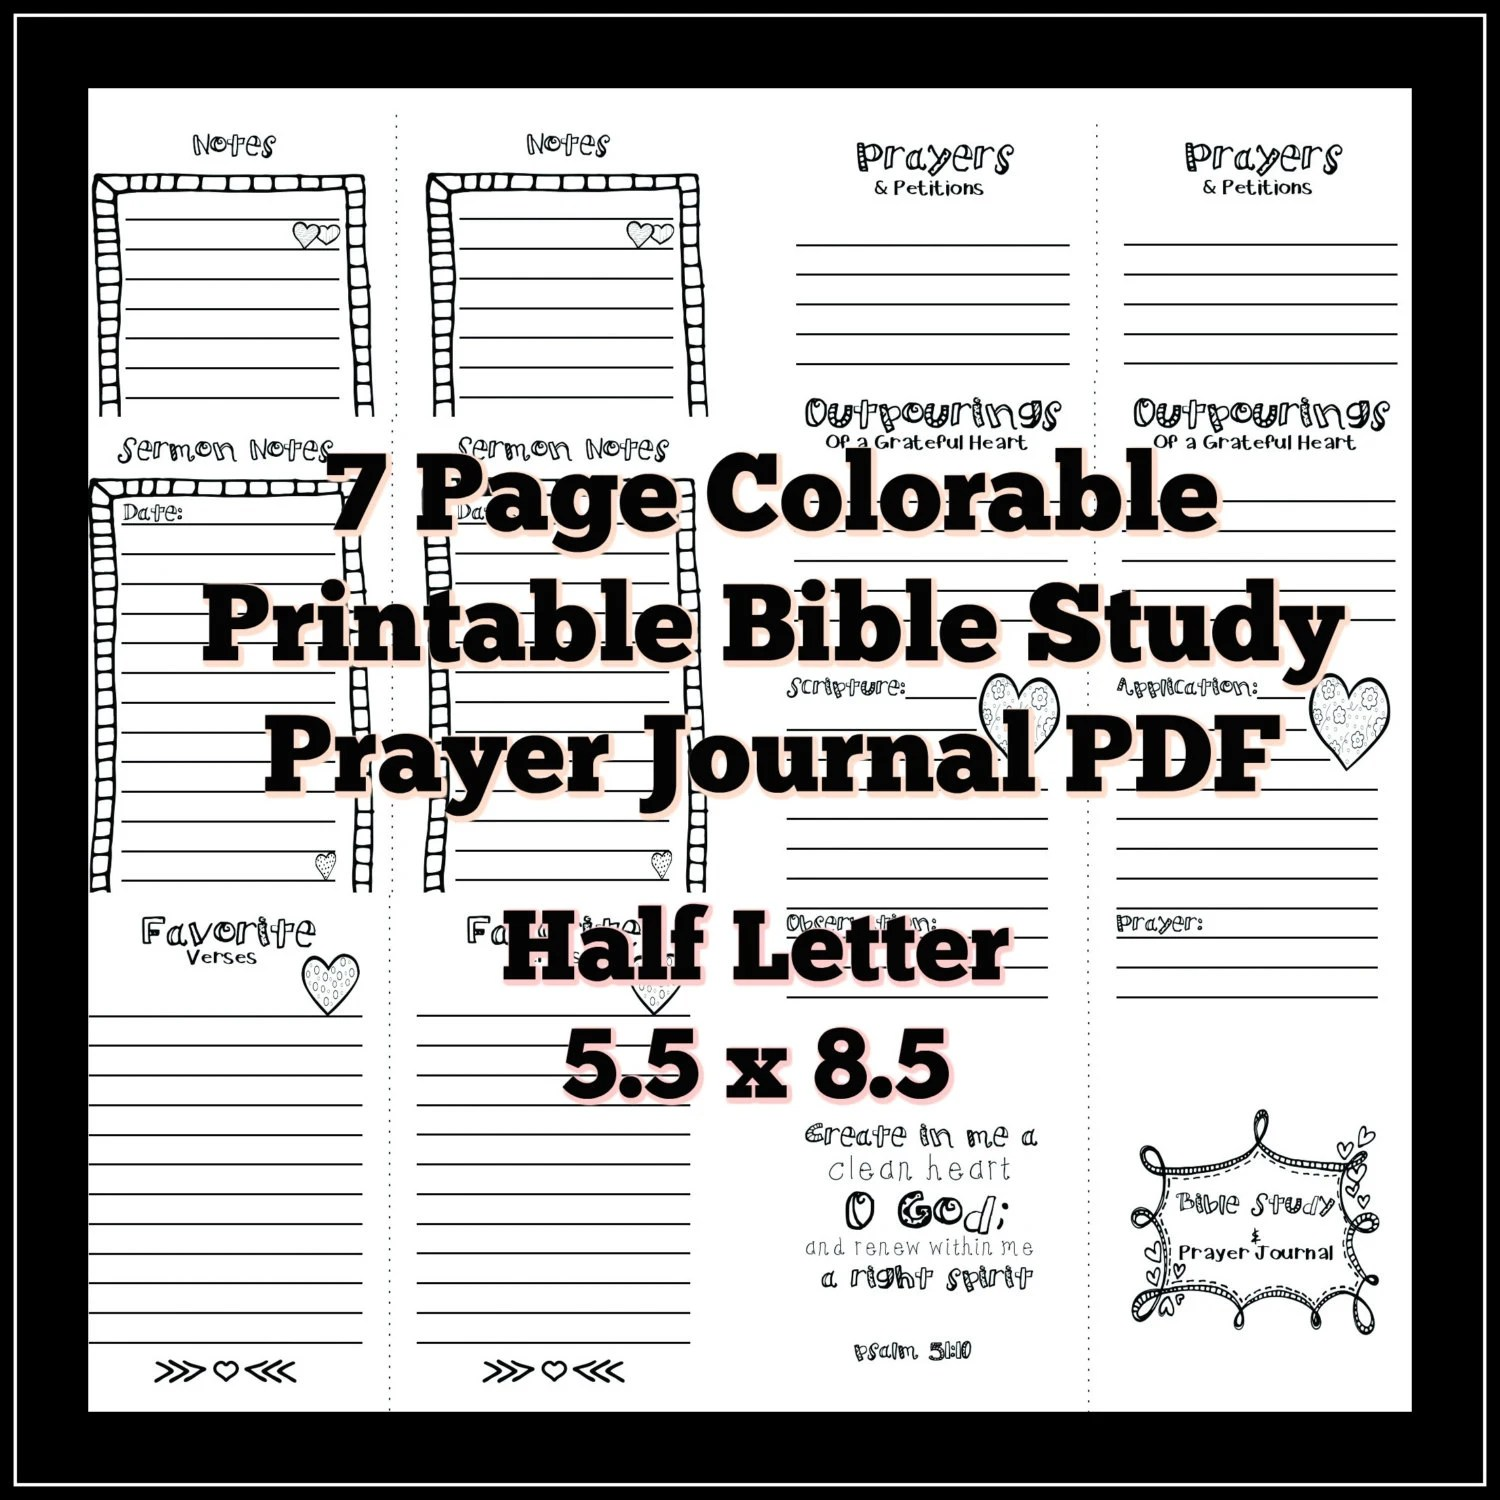 Half Letter 5 5x8 5 Bible Study Prayer Journal Colorable